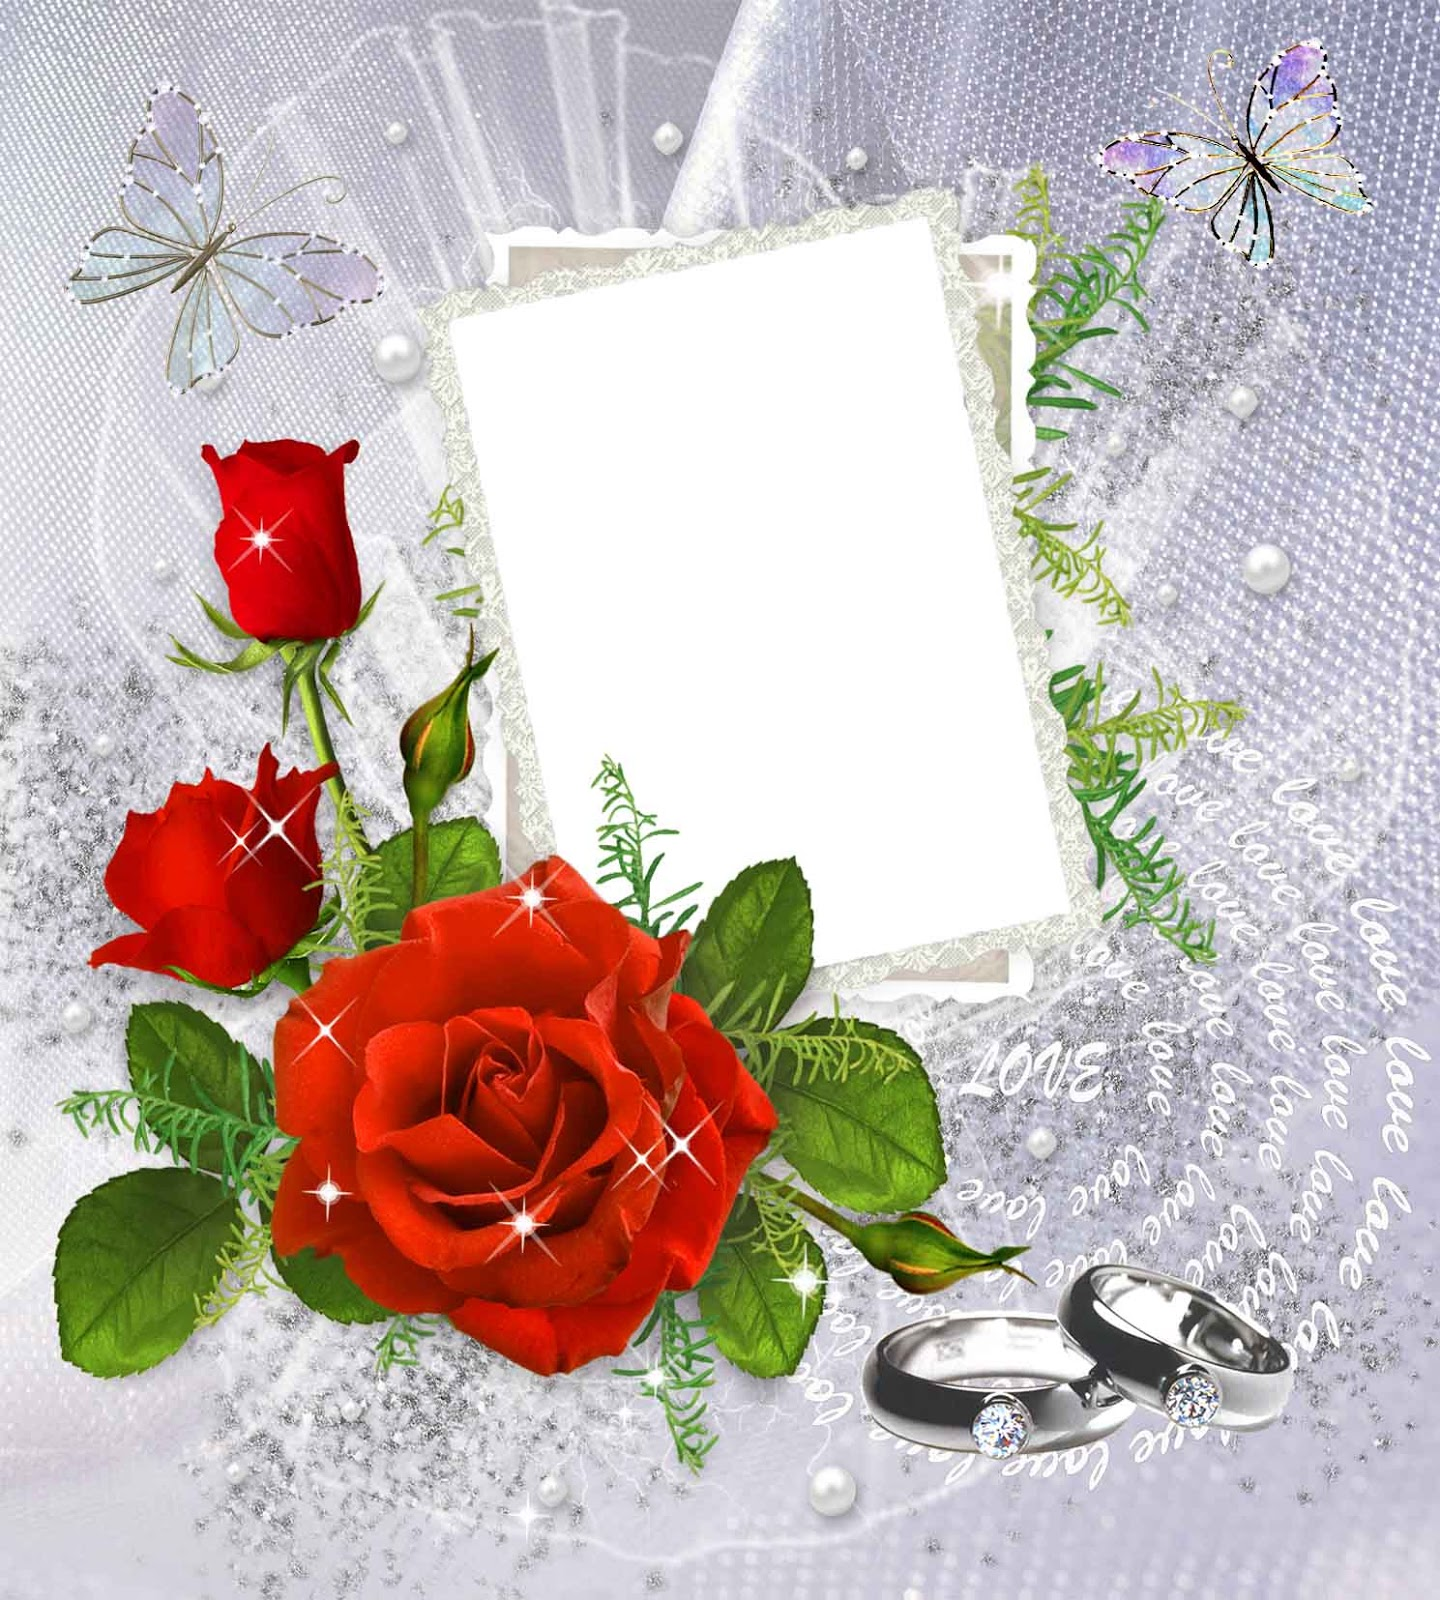 Rings, Roses, Wedding Photo Frame Png image #35206